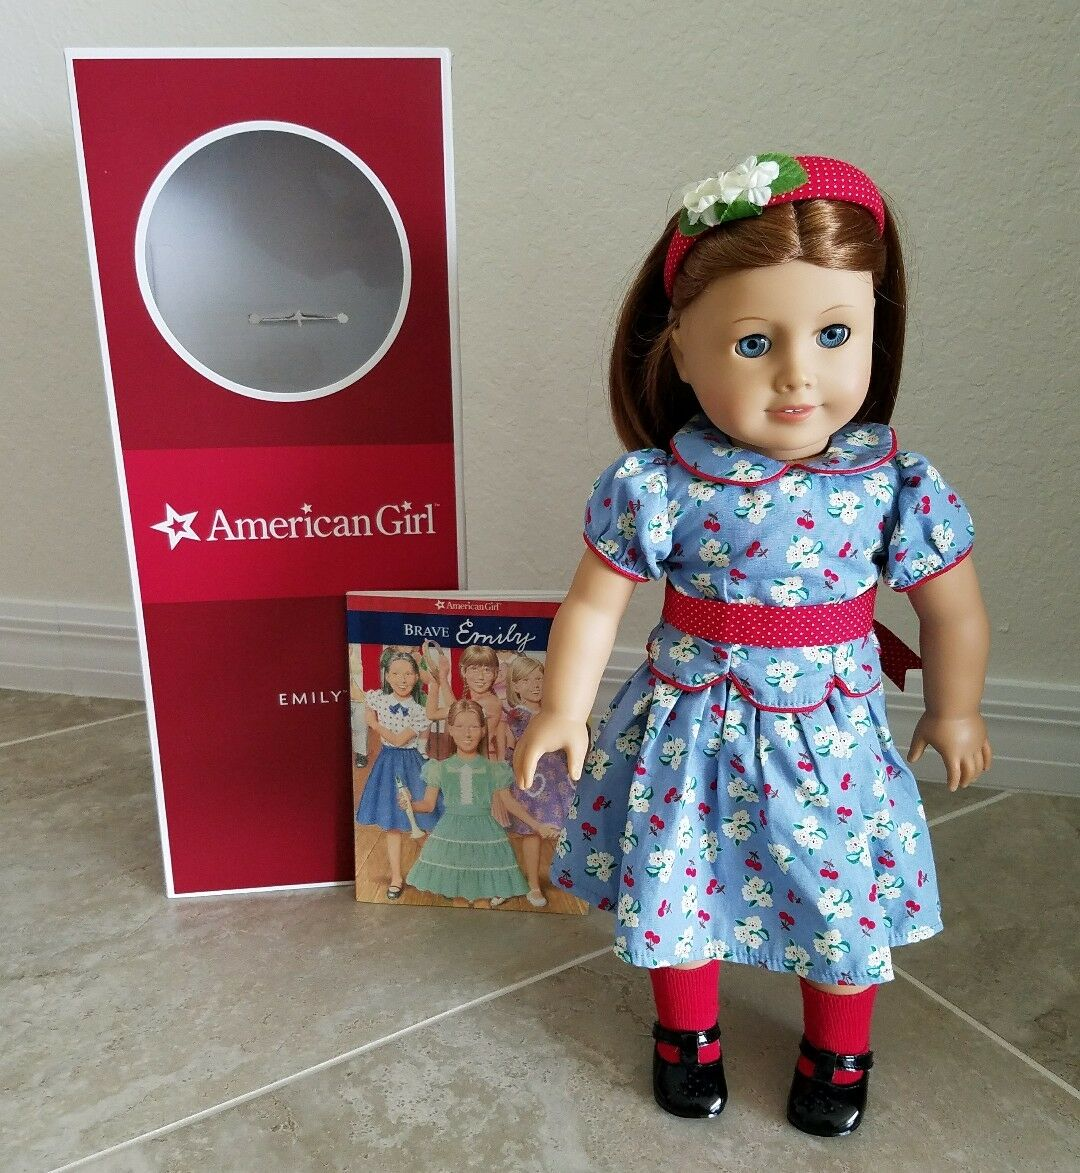 EUC Rare American Girl Doll Pleasent Company Emilly Bennet in box with book